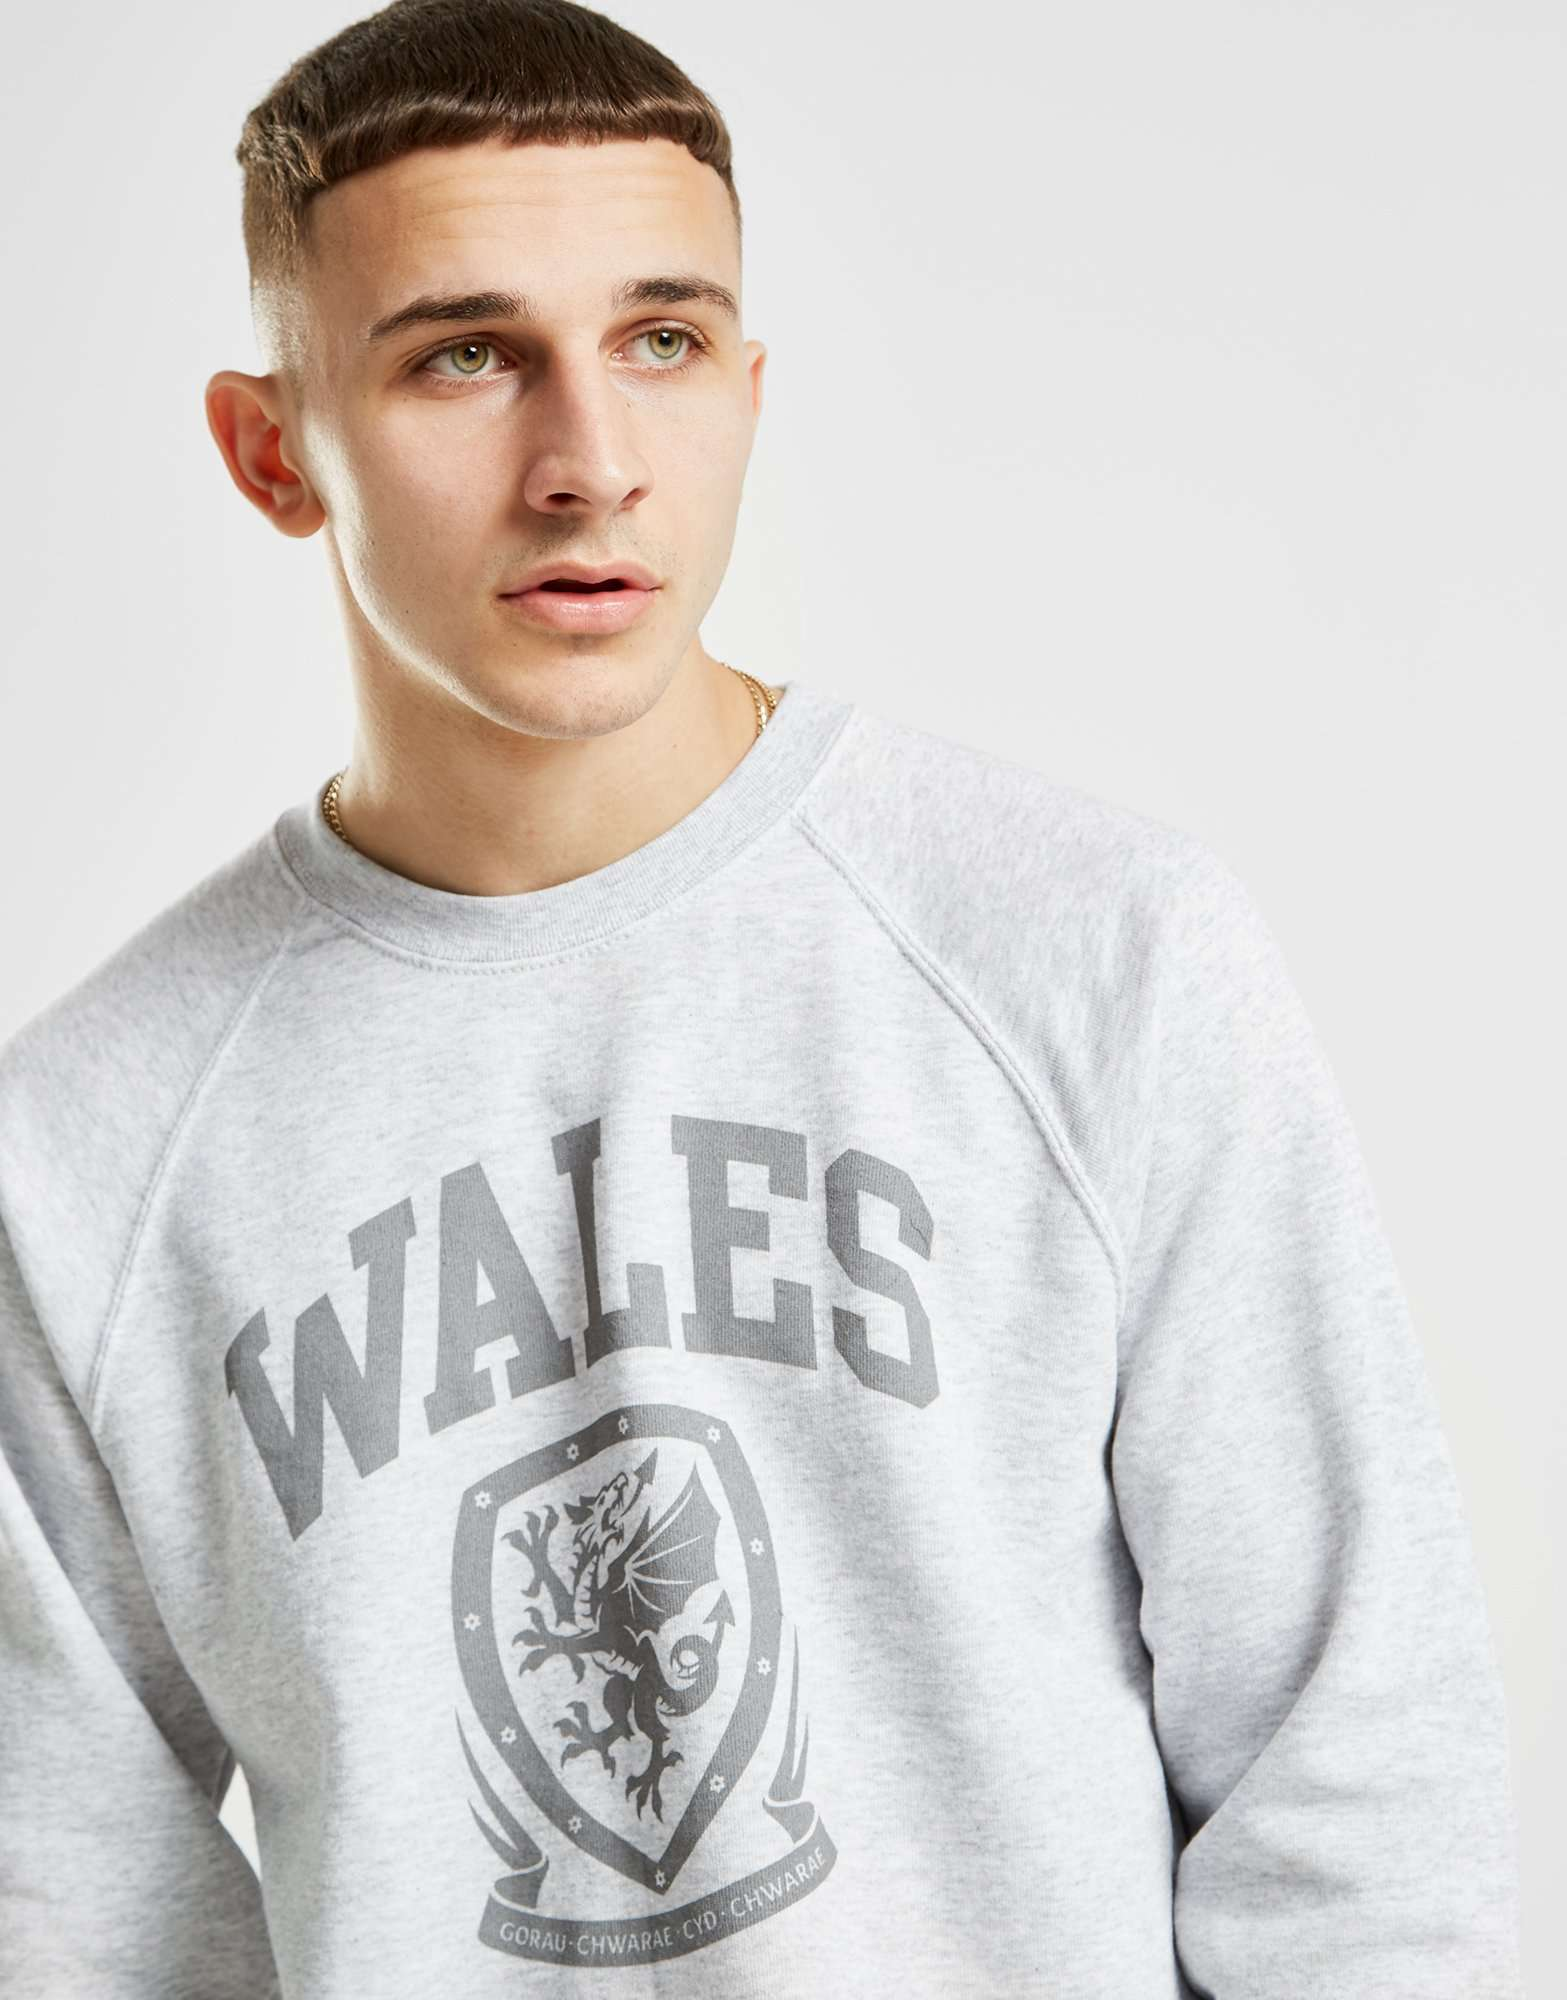 Official Team Wales Crew Sweatshirt